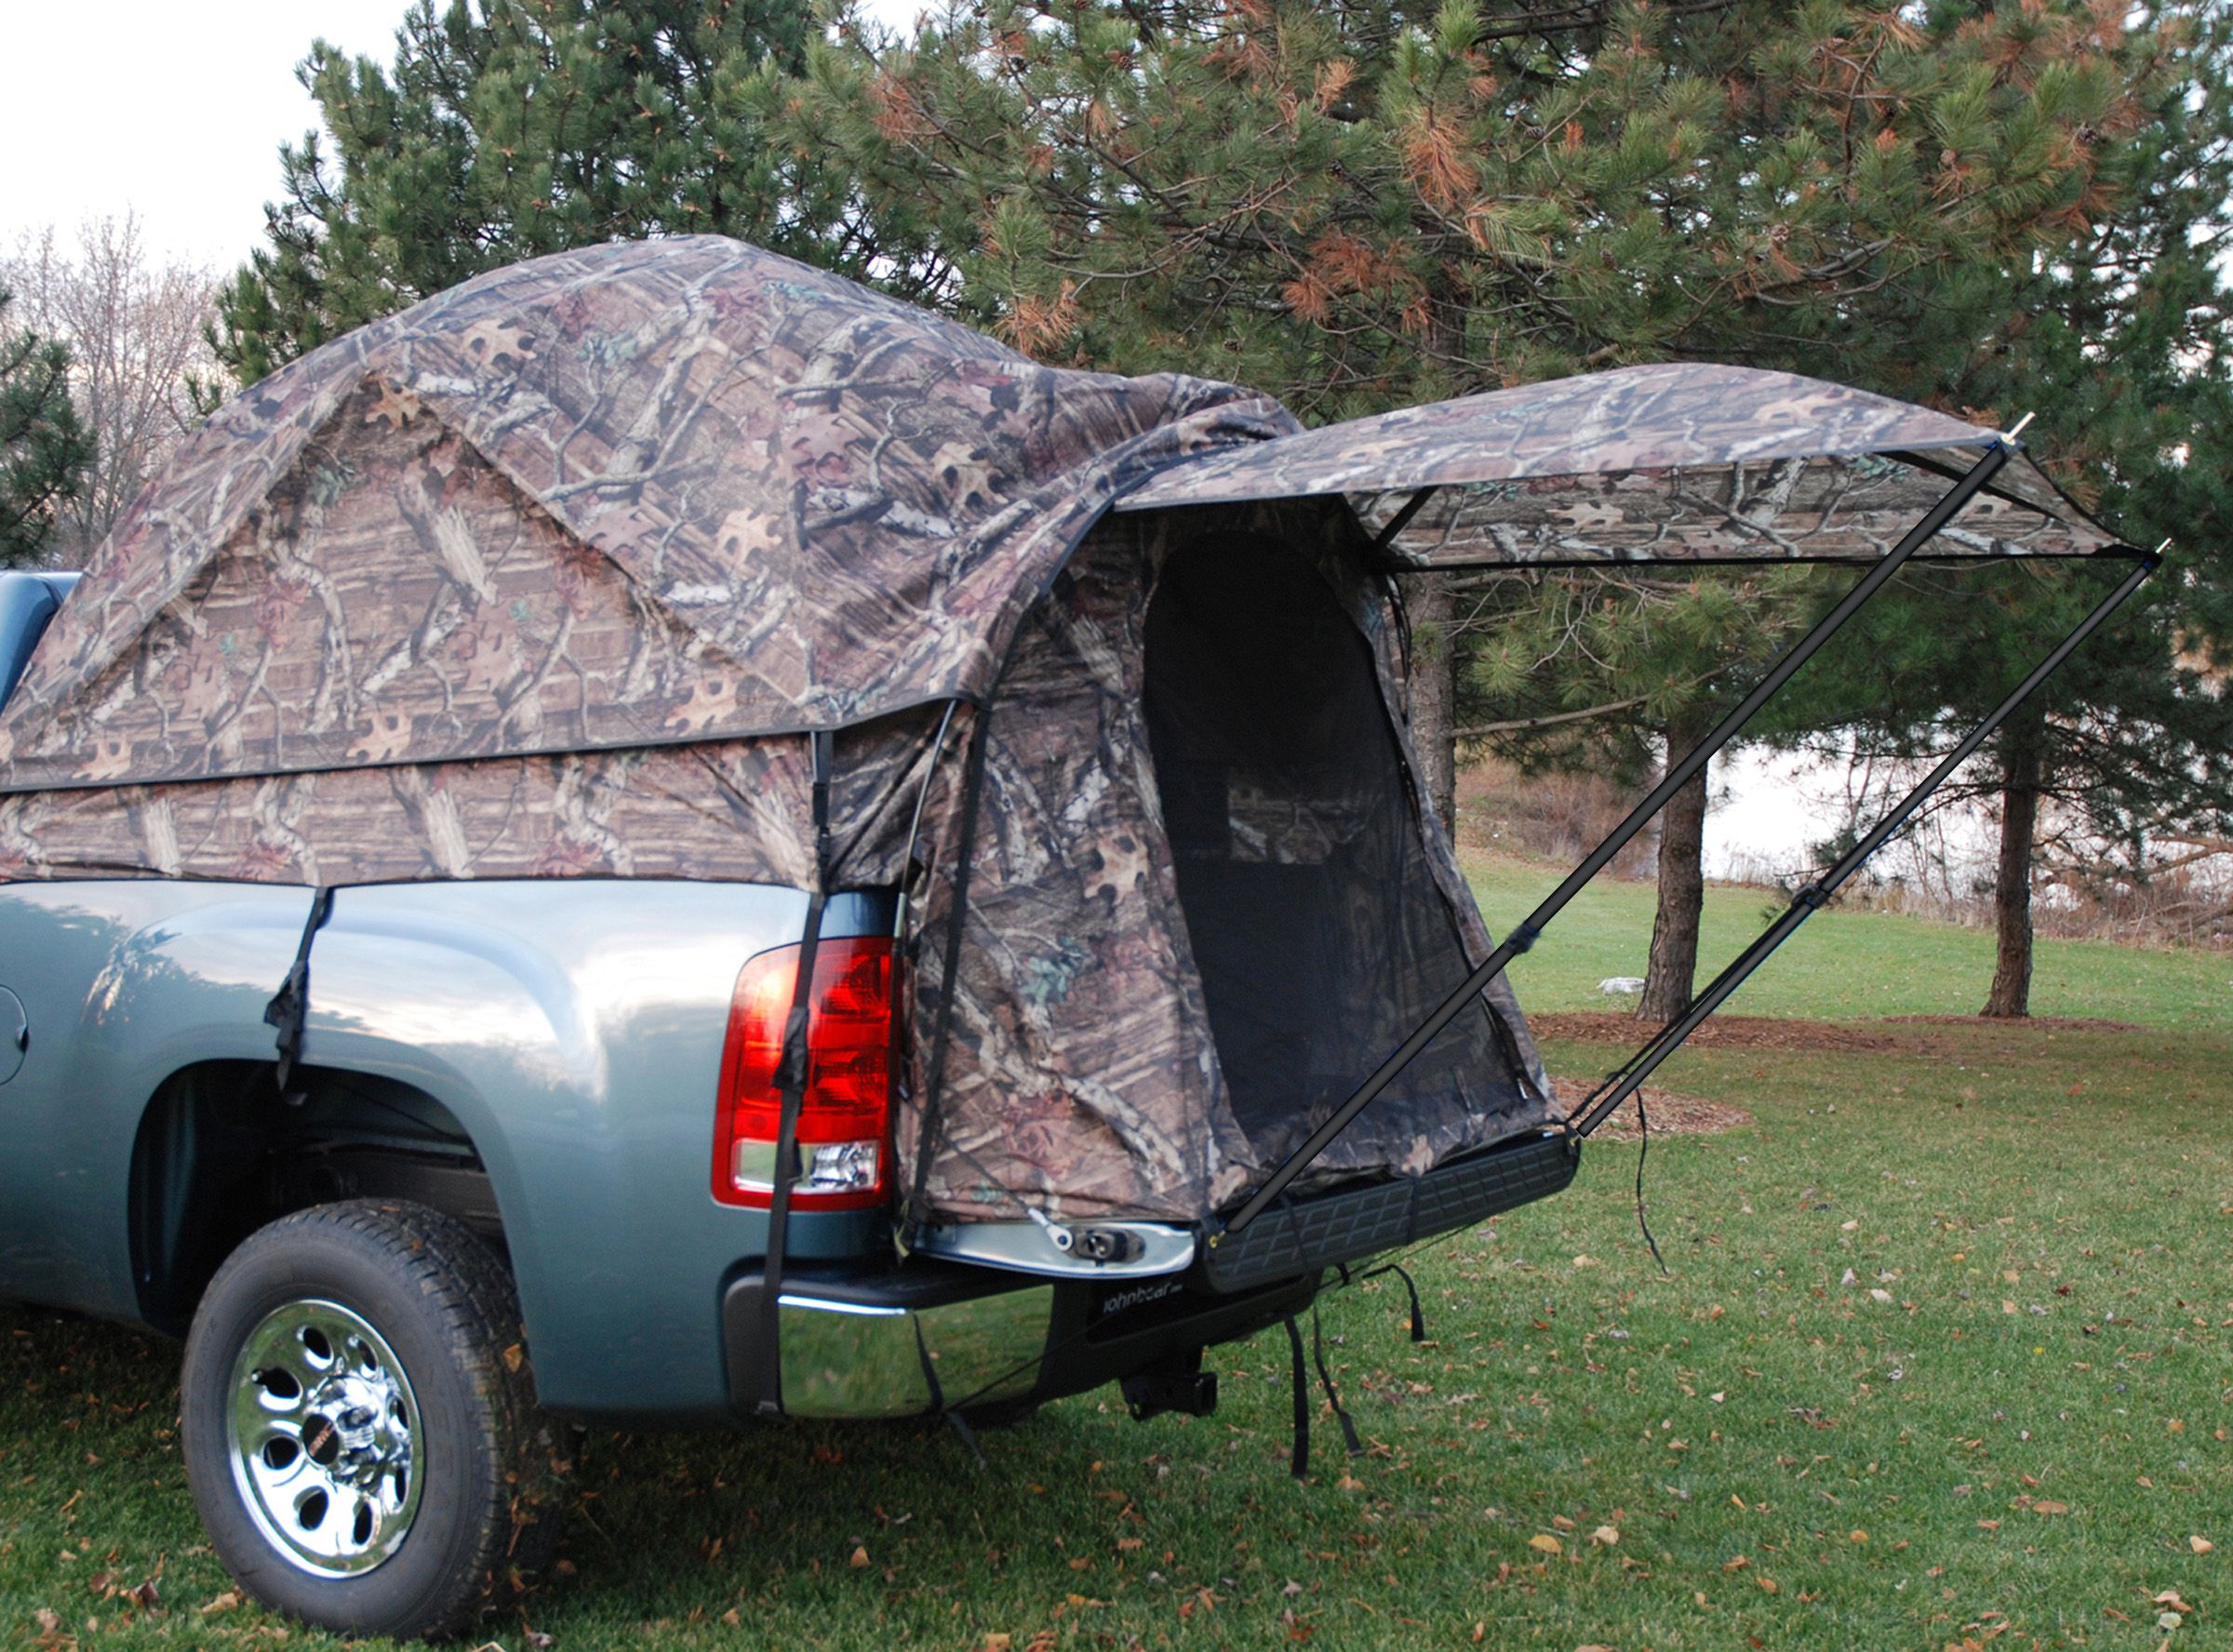 Truck bed c&ing & Truck tents Camping tents vehicle camping tents at U.S Outdoor ...